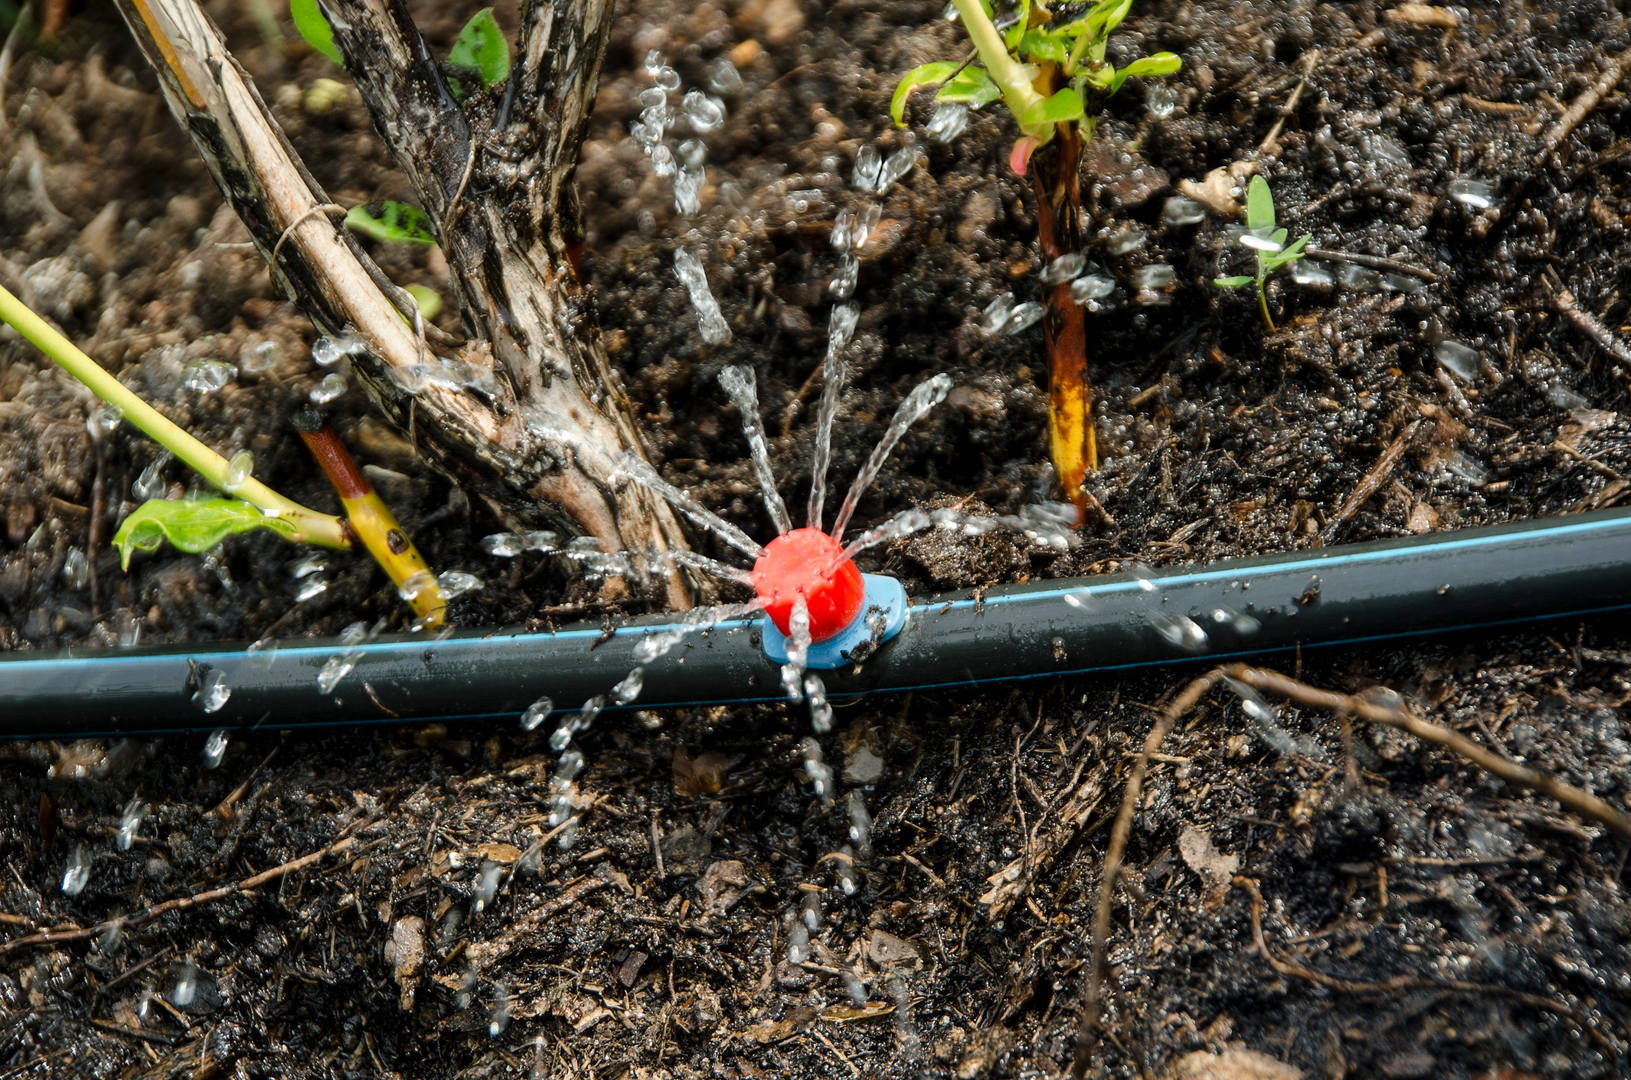 Drip irrigation. The photo shows the irr